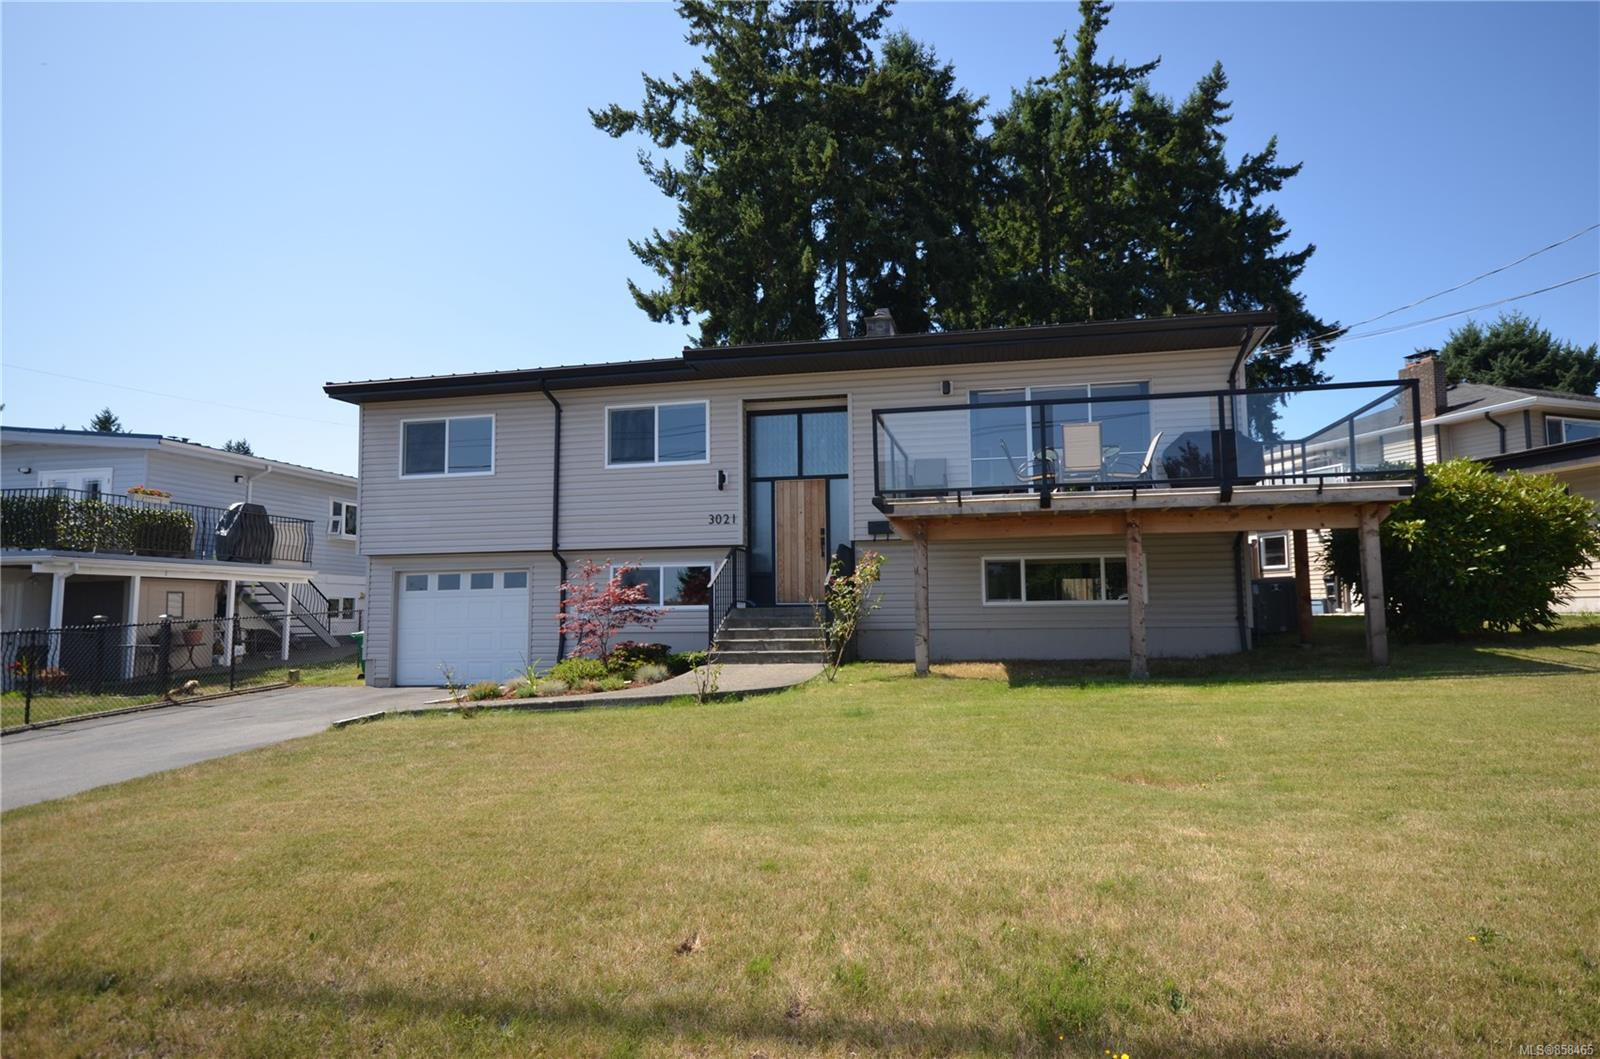 Main Photo: 3021 Glen Eagle Cres in : Na Departure Bay House for sale (Nanaimo)  : MLS®# 858465